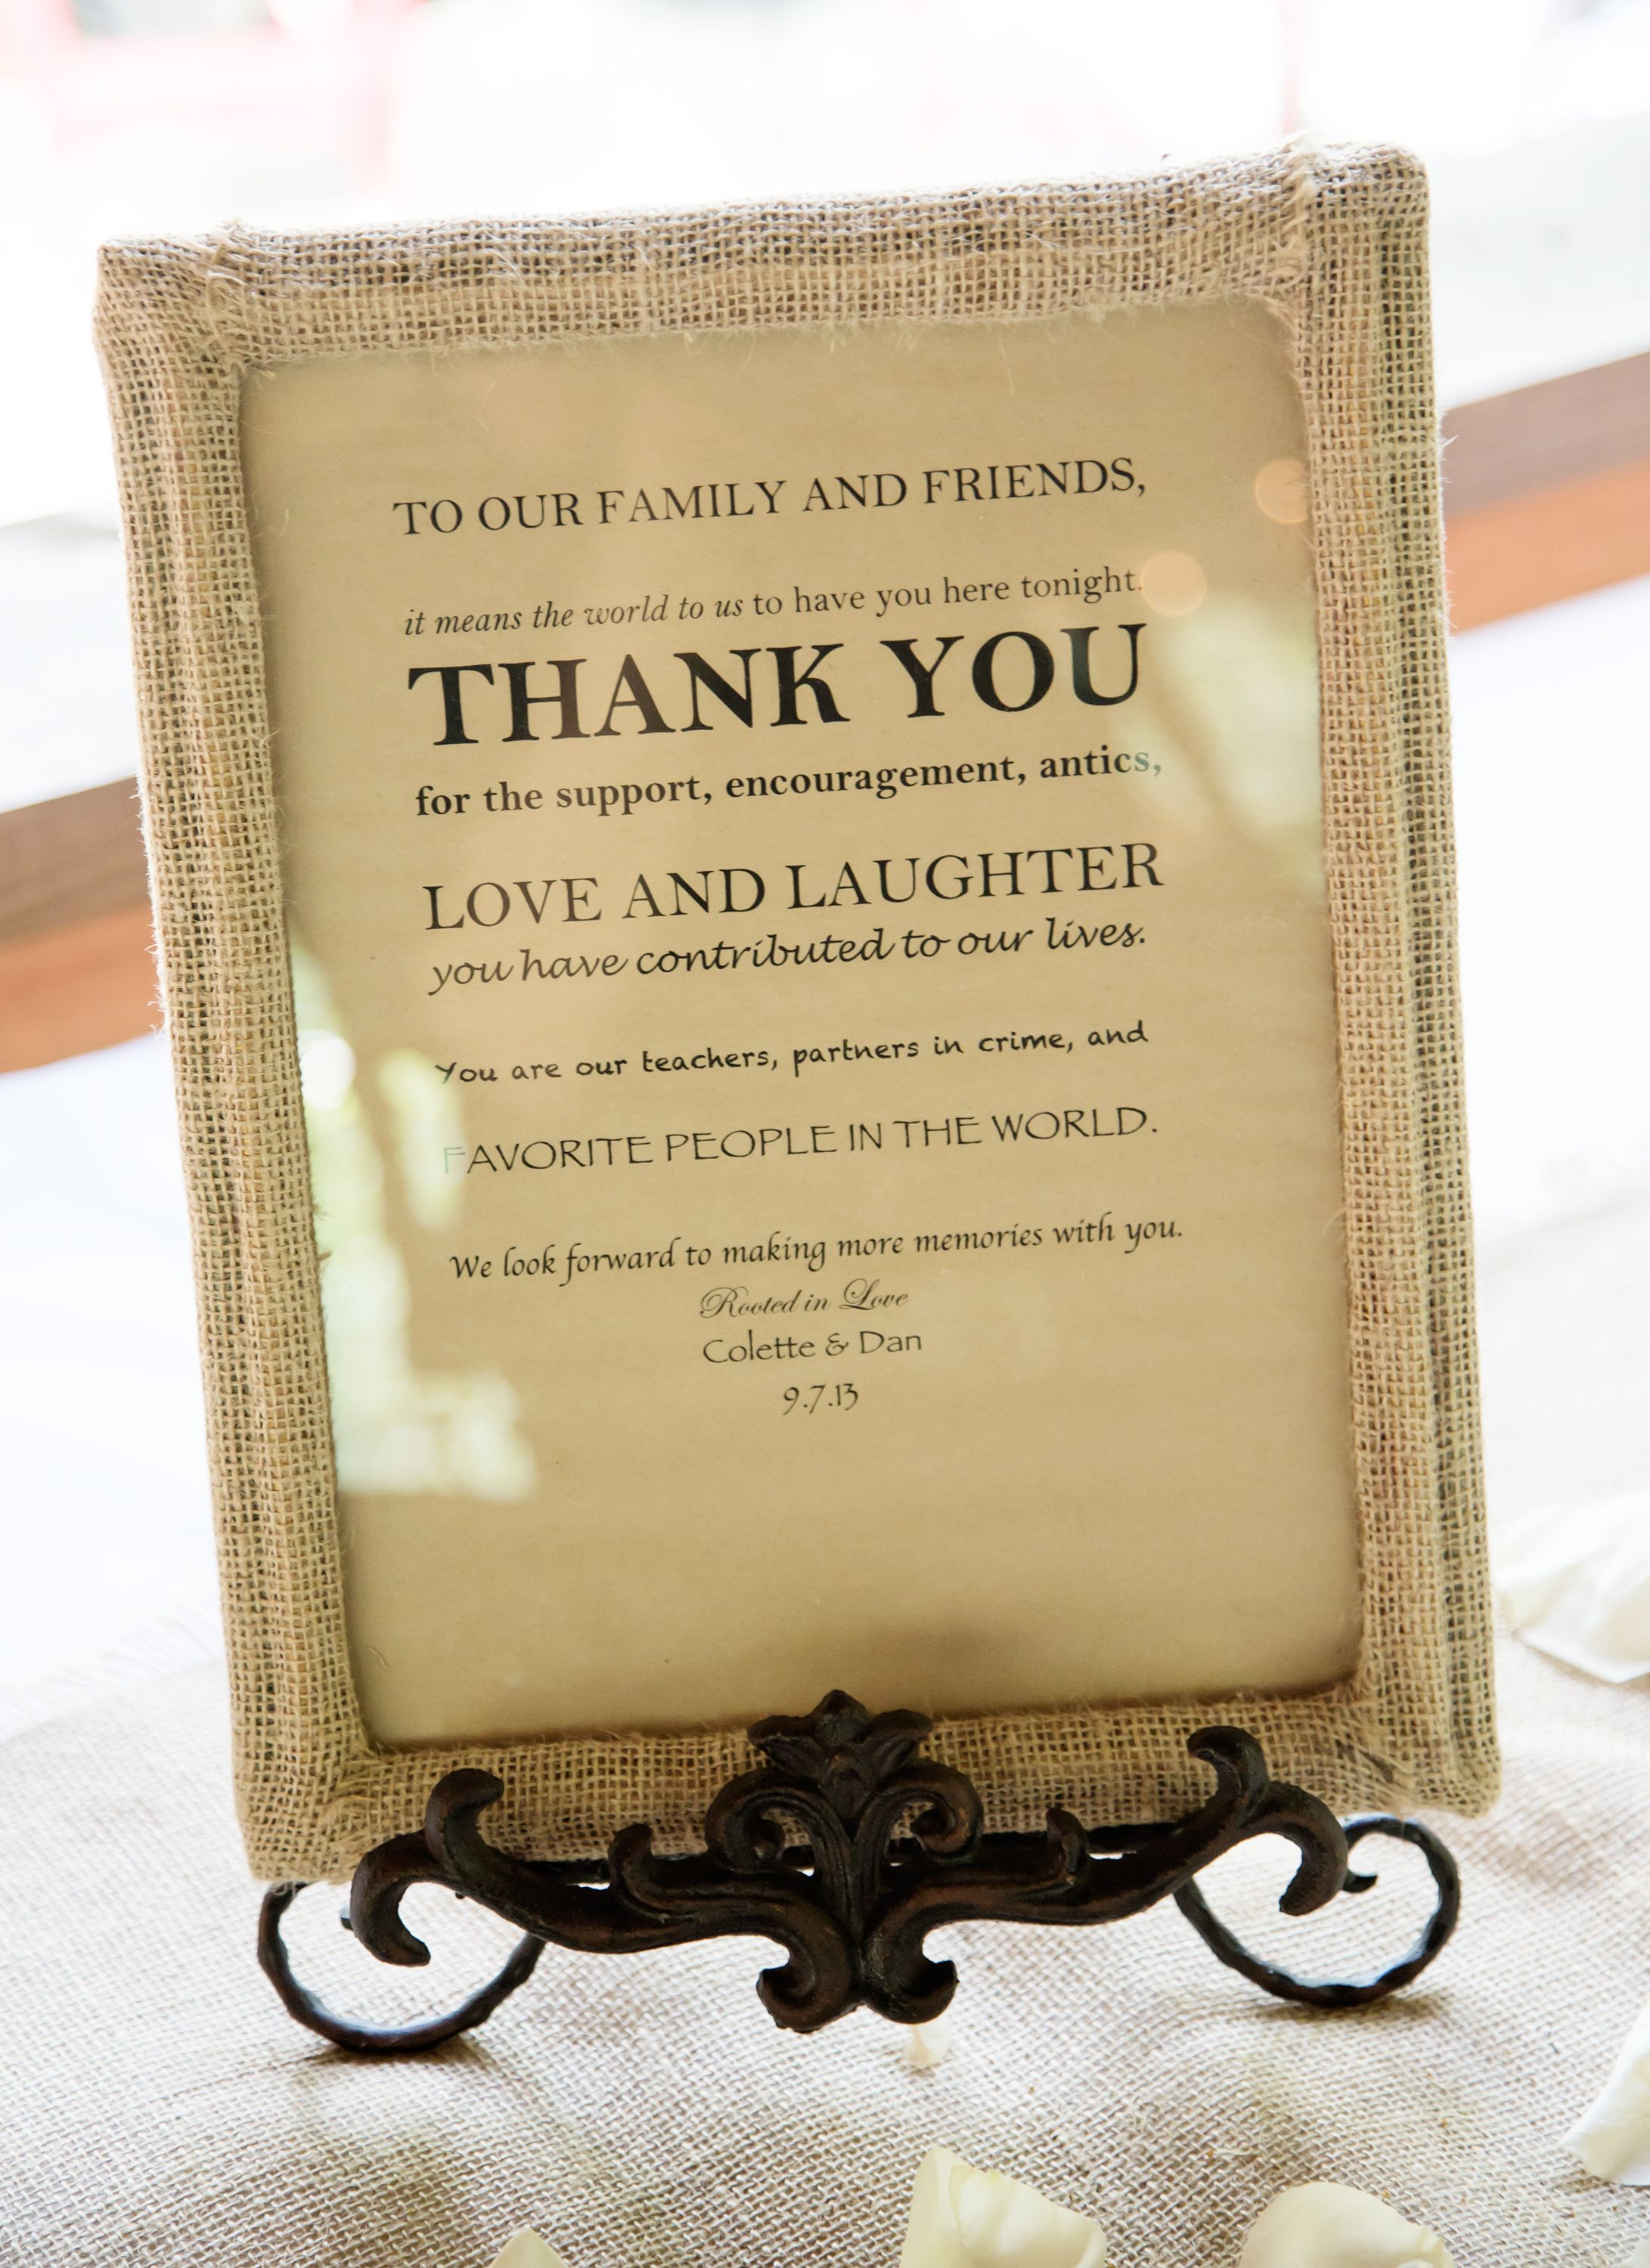 Wedding Gift Table Thank You Poem : Thank you sign for gift table #wedding Wedding Pinterest